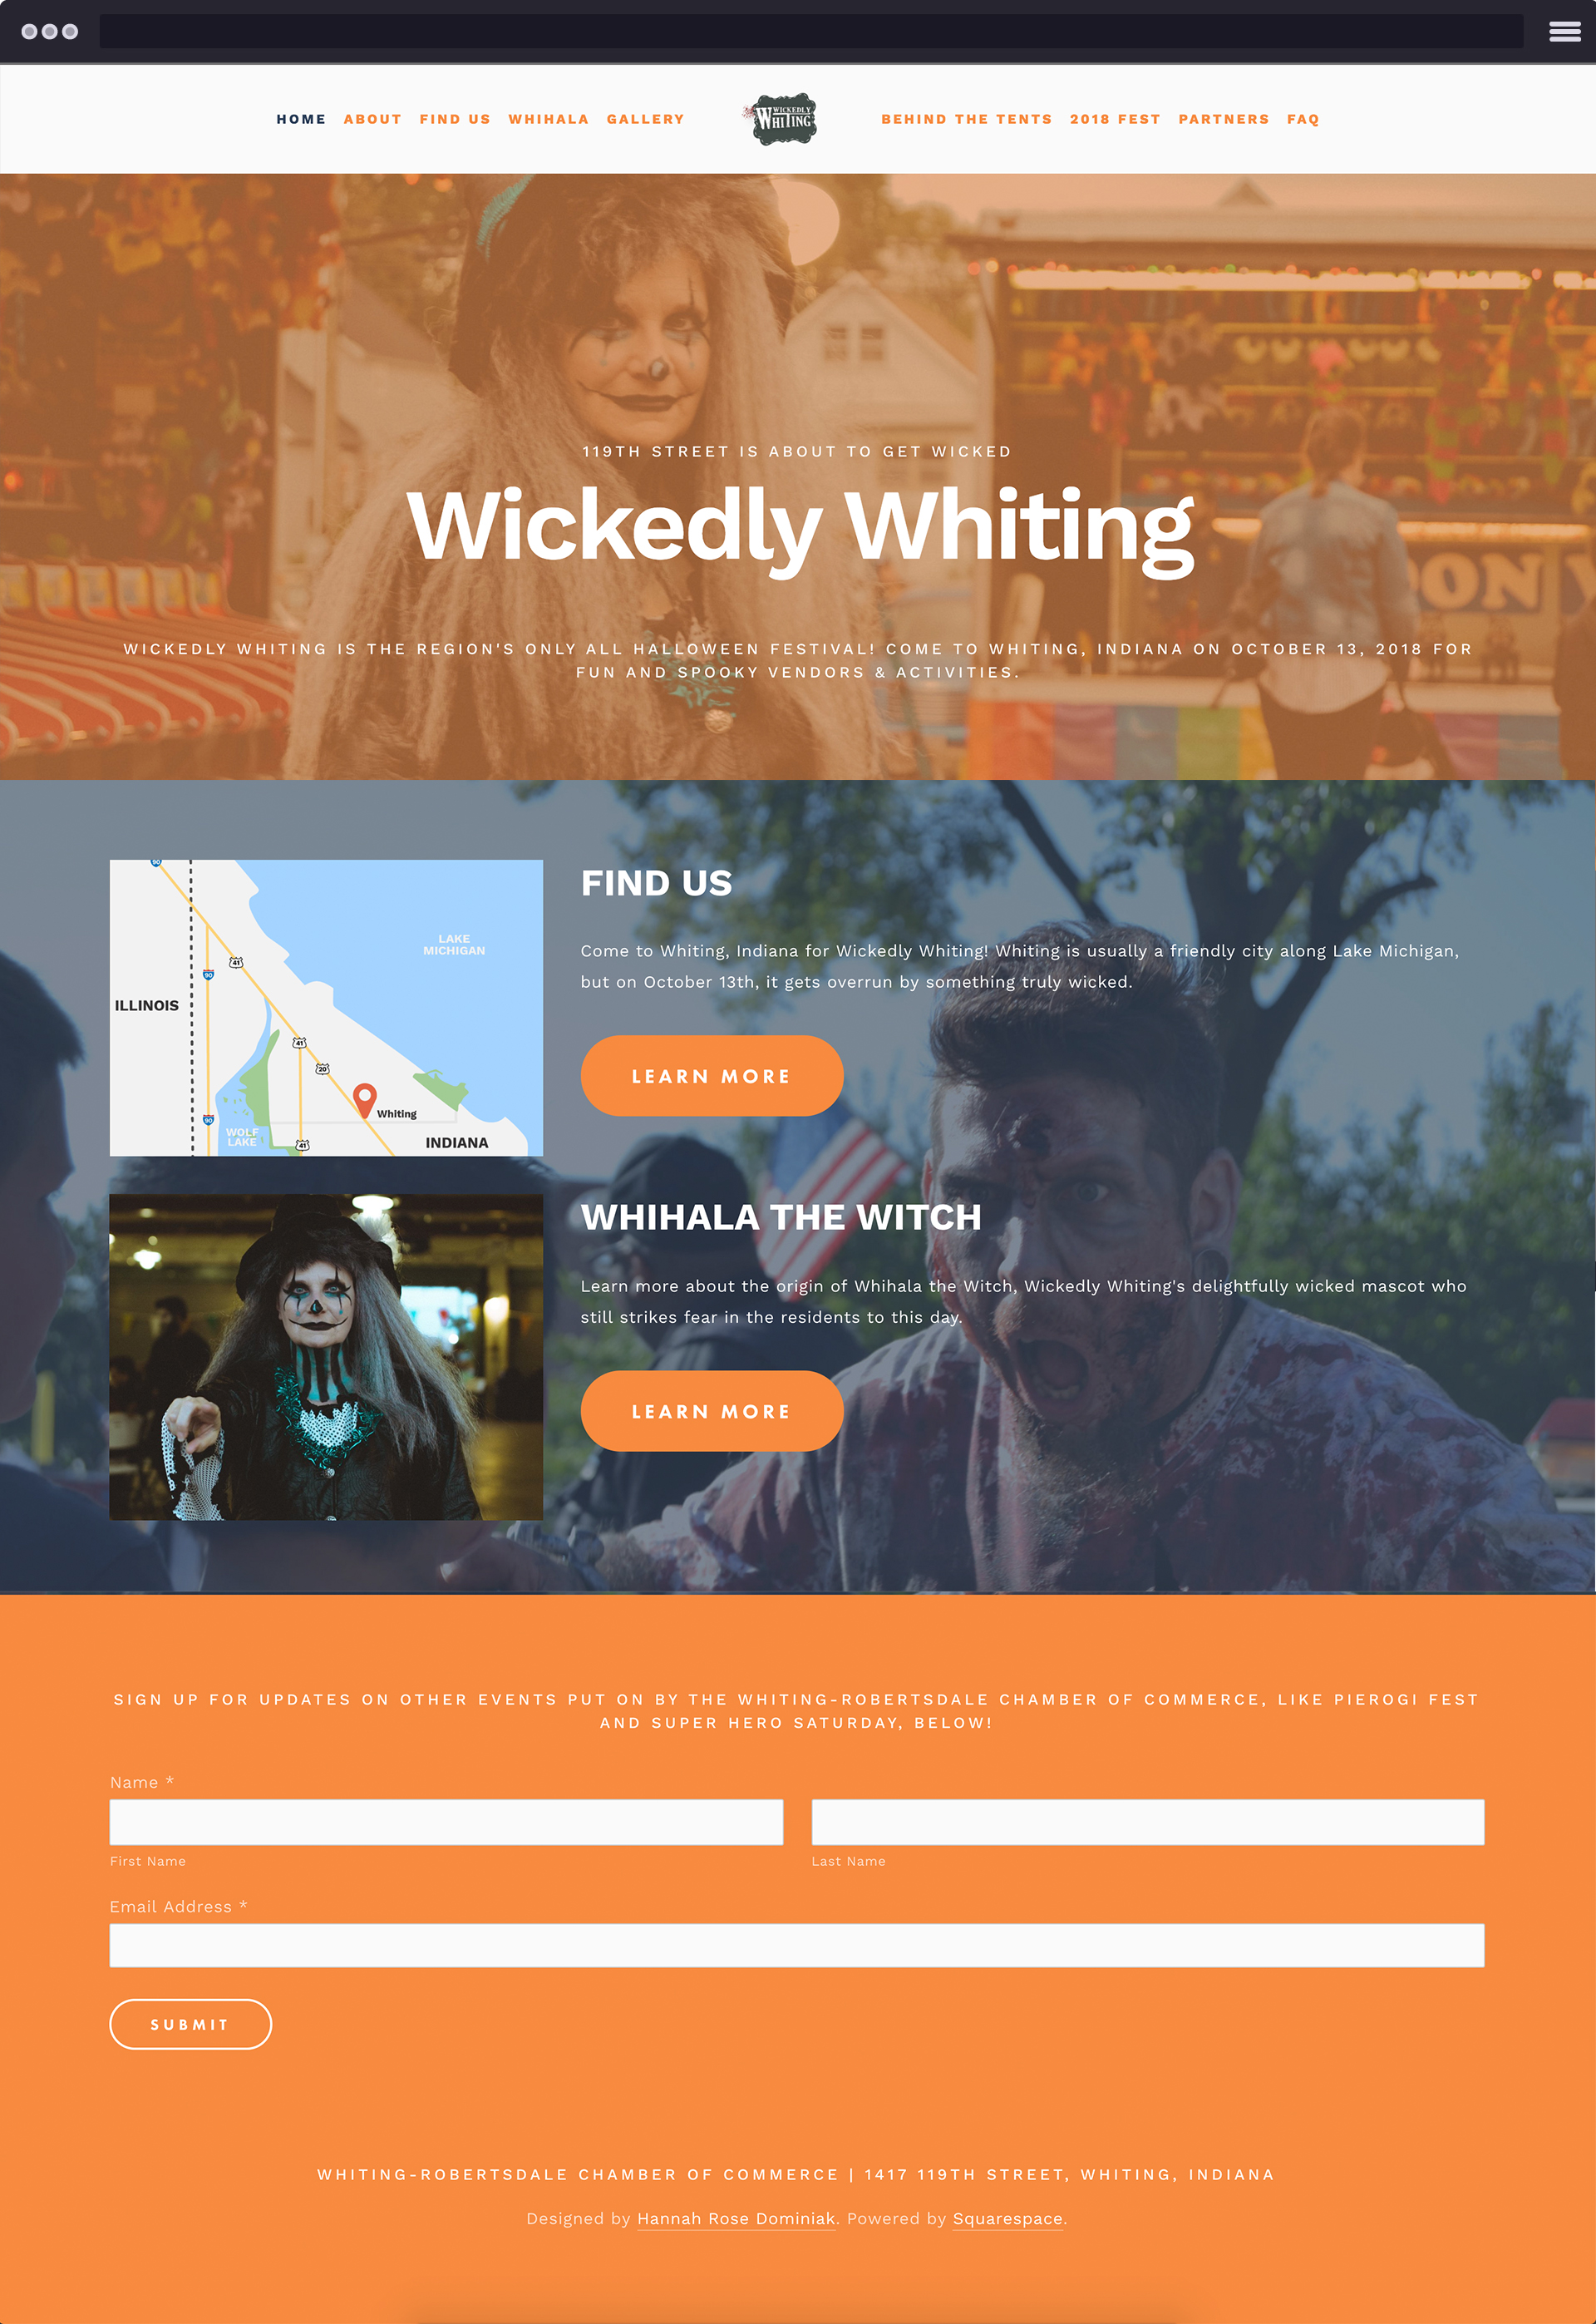 Wickedly Whiting